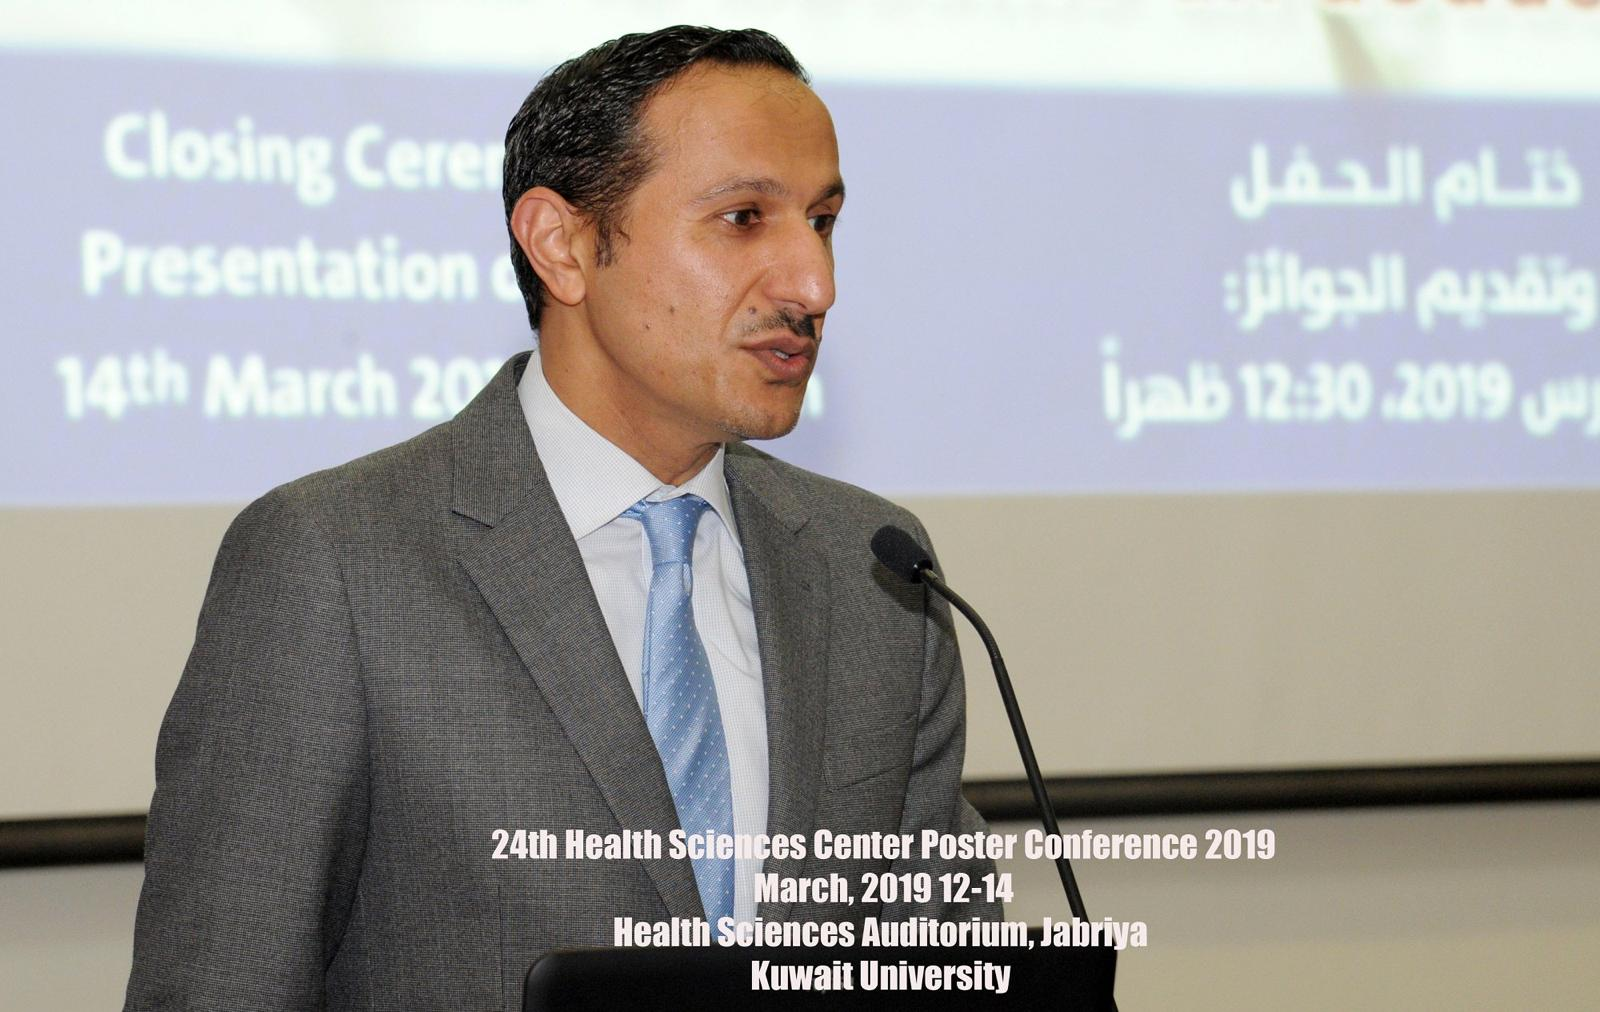 24th Health Sciences Poster Conference 2019